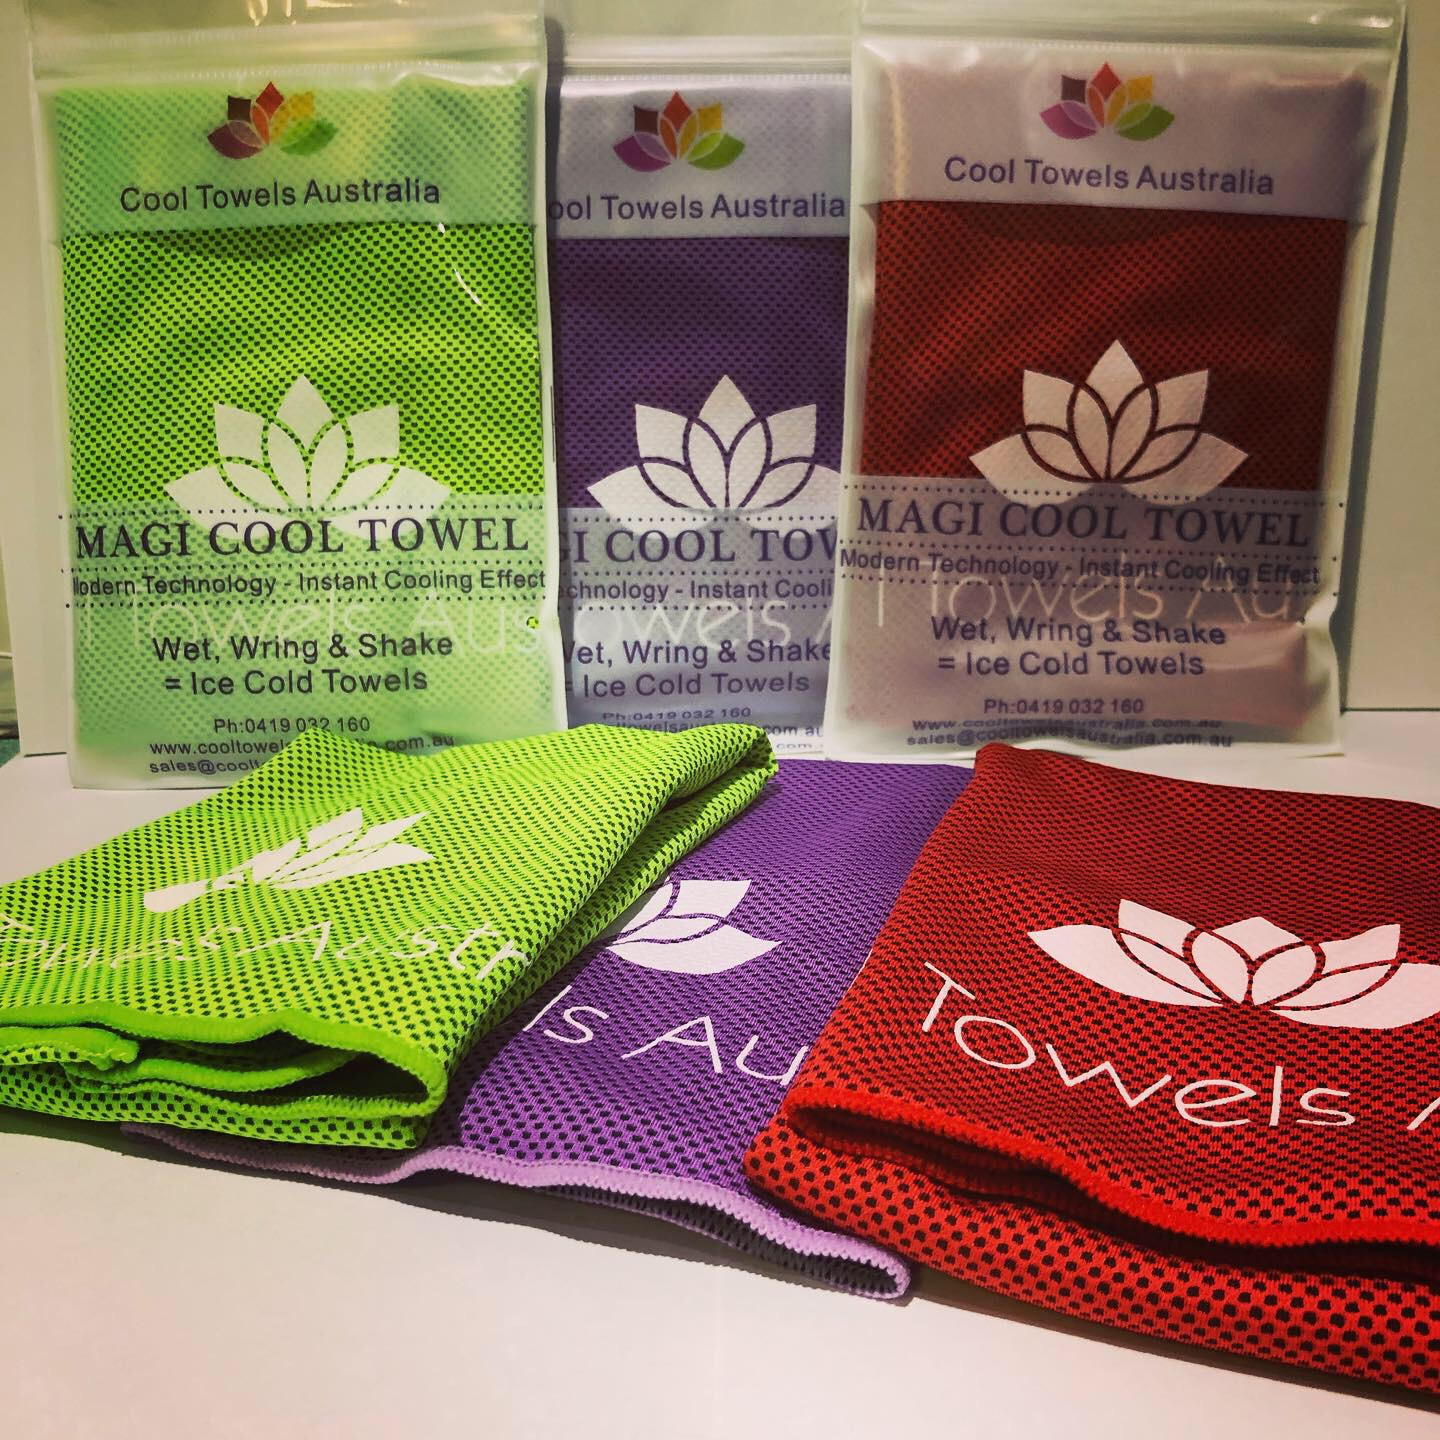 BUY 2 GET 1 FREE – Online Special Only – Magi Cool Towels UPF 50+ Inc Postage With Tracking Within Australia